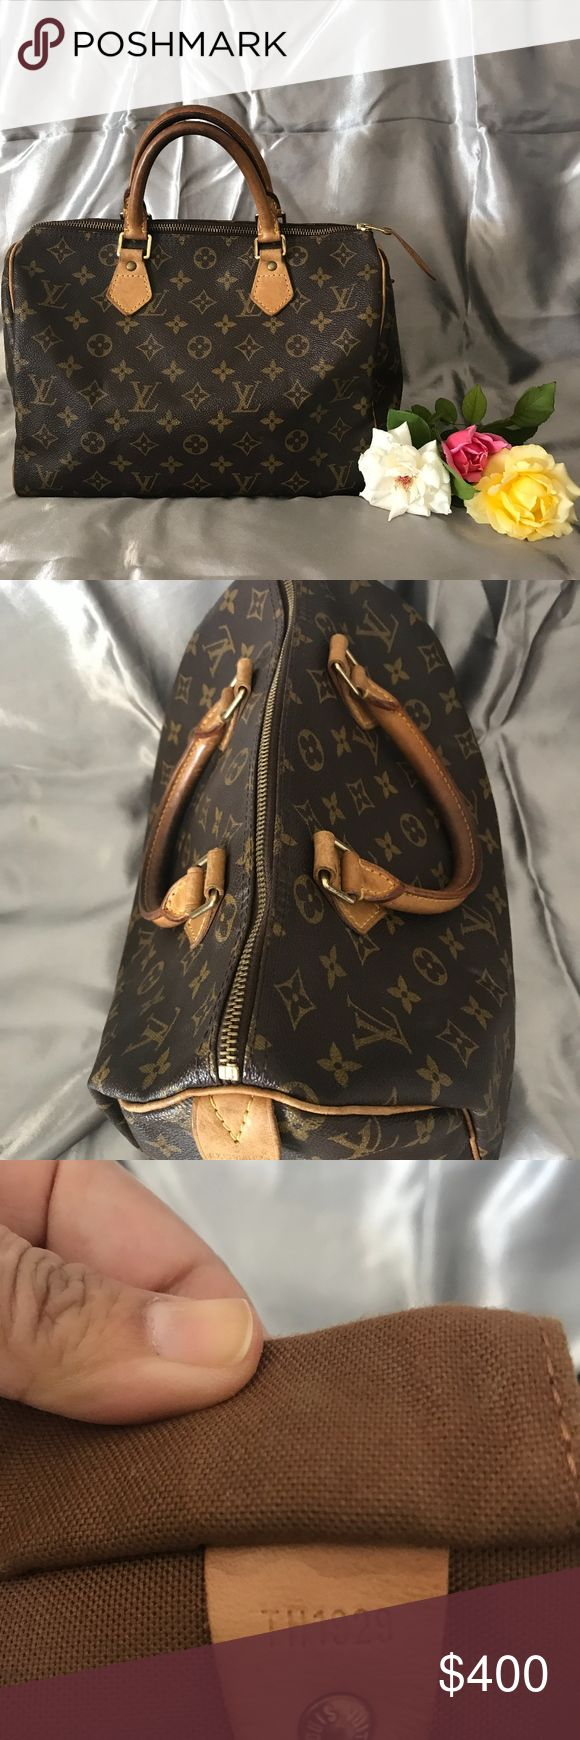 Pre owned Louis Vuitton Monogram Speedy 30 A really good condition speedy 30 with lock and key. theres a mark on the inside. Louis Vuitton Bags Hobos